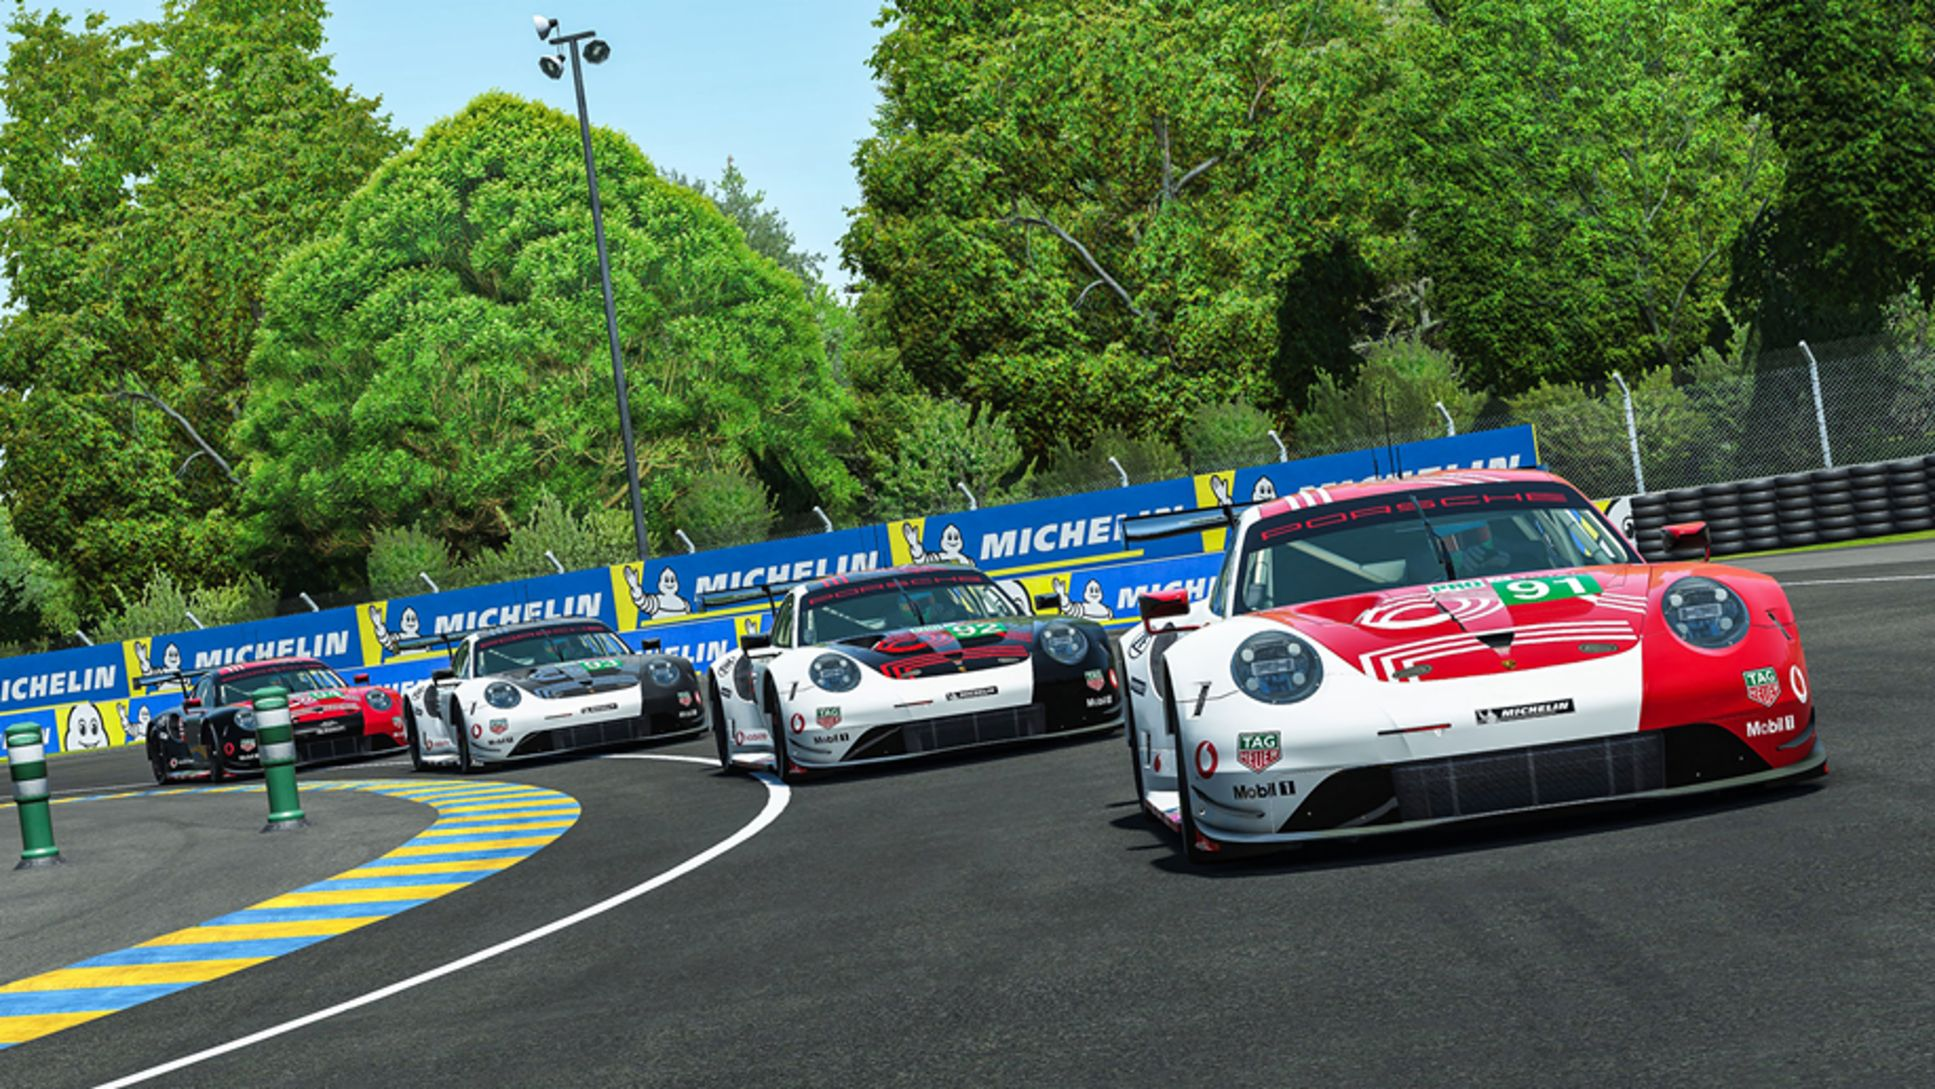 911 RSR, virtual 24 Hours of Le Mans, 2020, Porsche AG